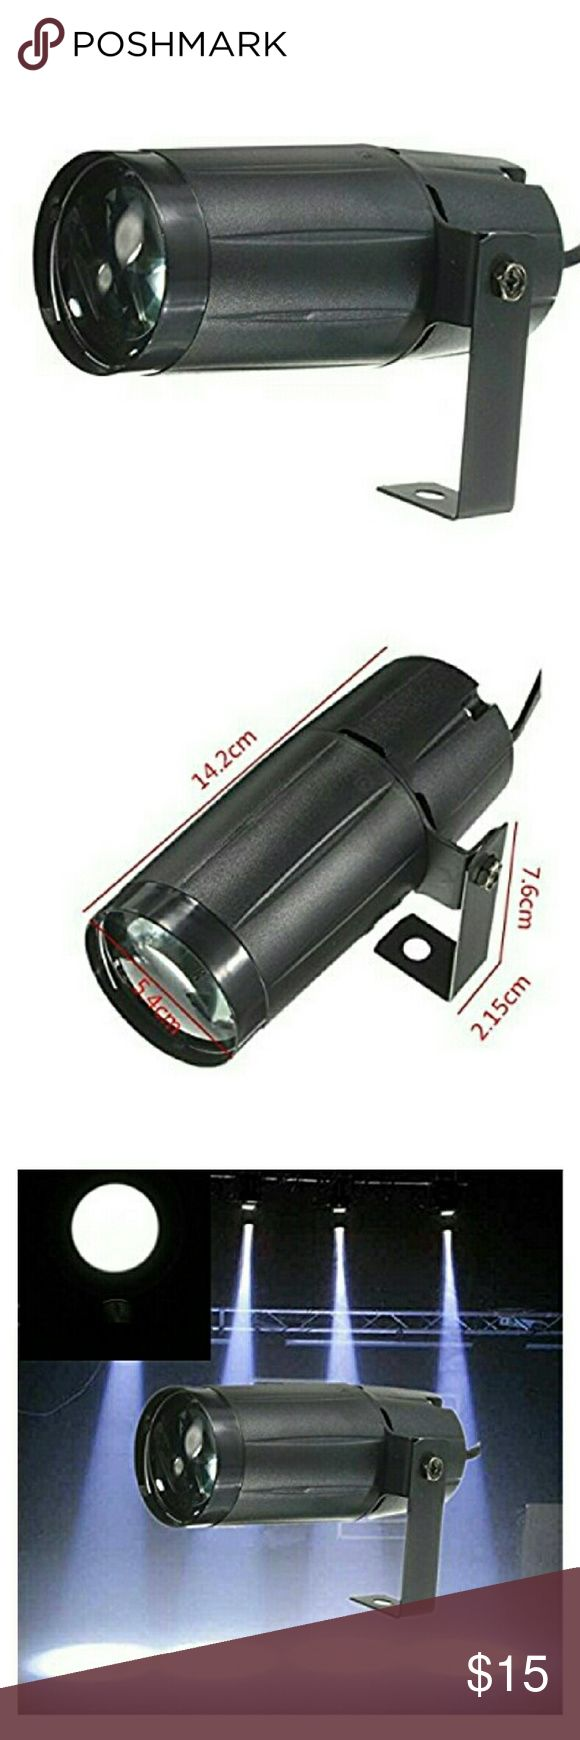 Big event red curtains with spotlight stock photo getty images - 3w Led Single Beam Spotlight W Dual Mounts Nwt Pure White 3w Led Pin Spot